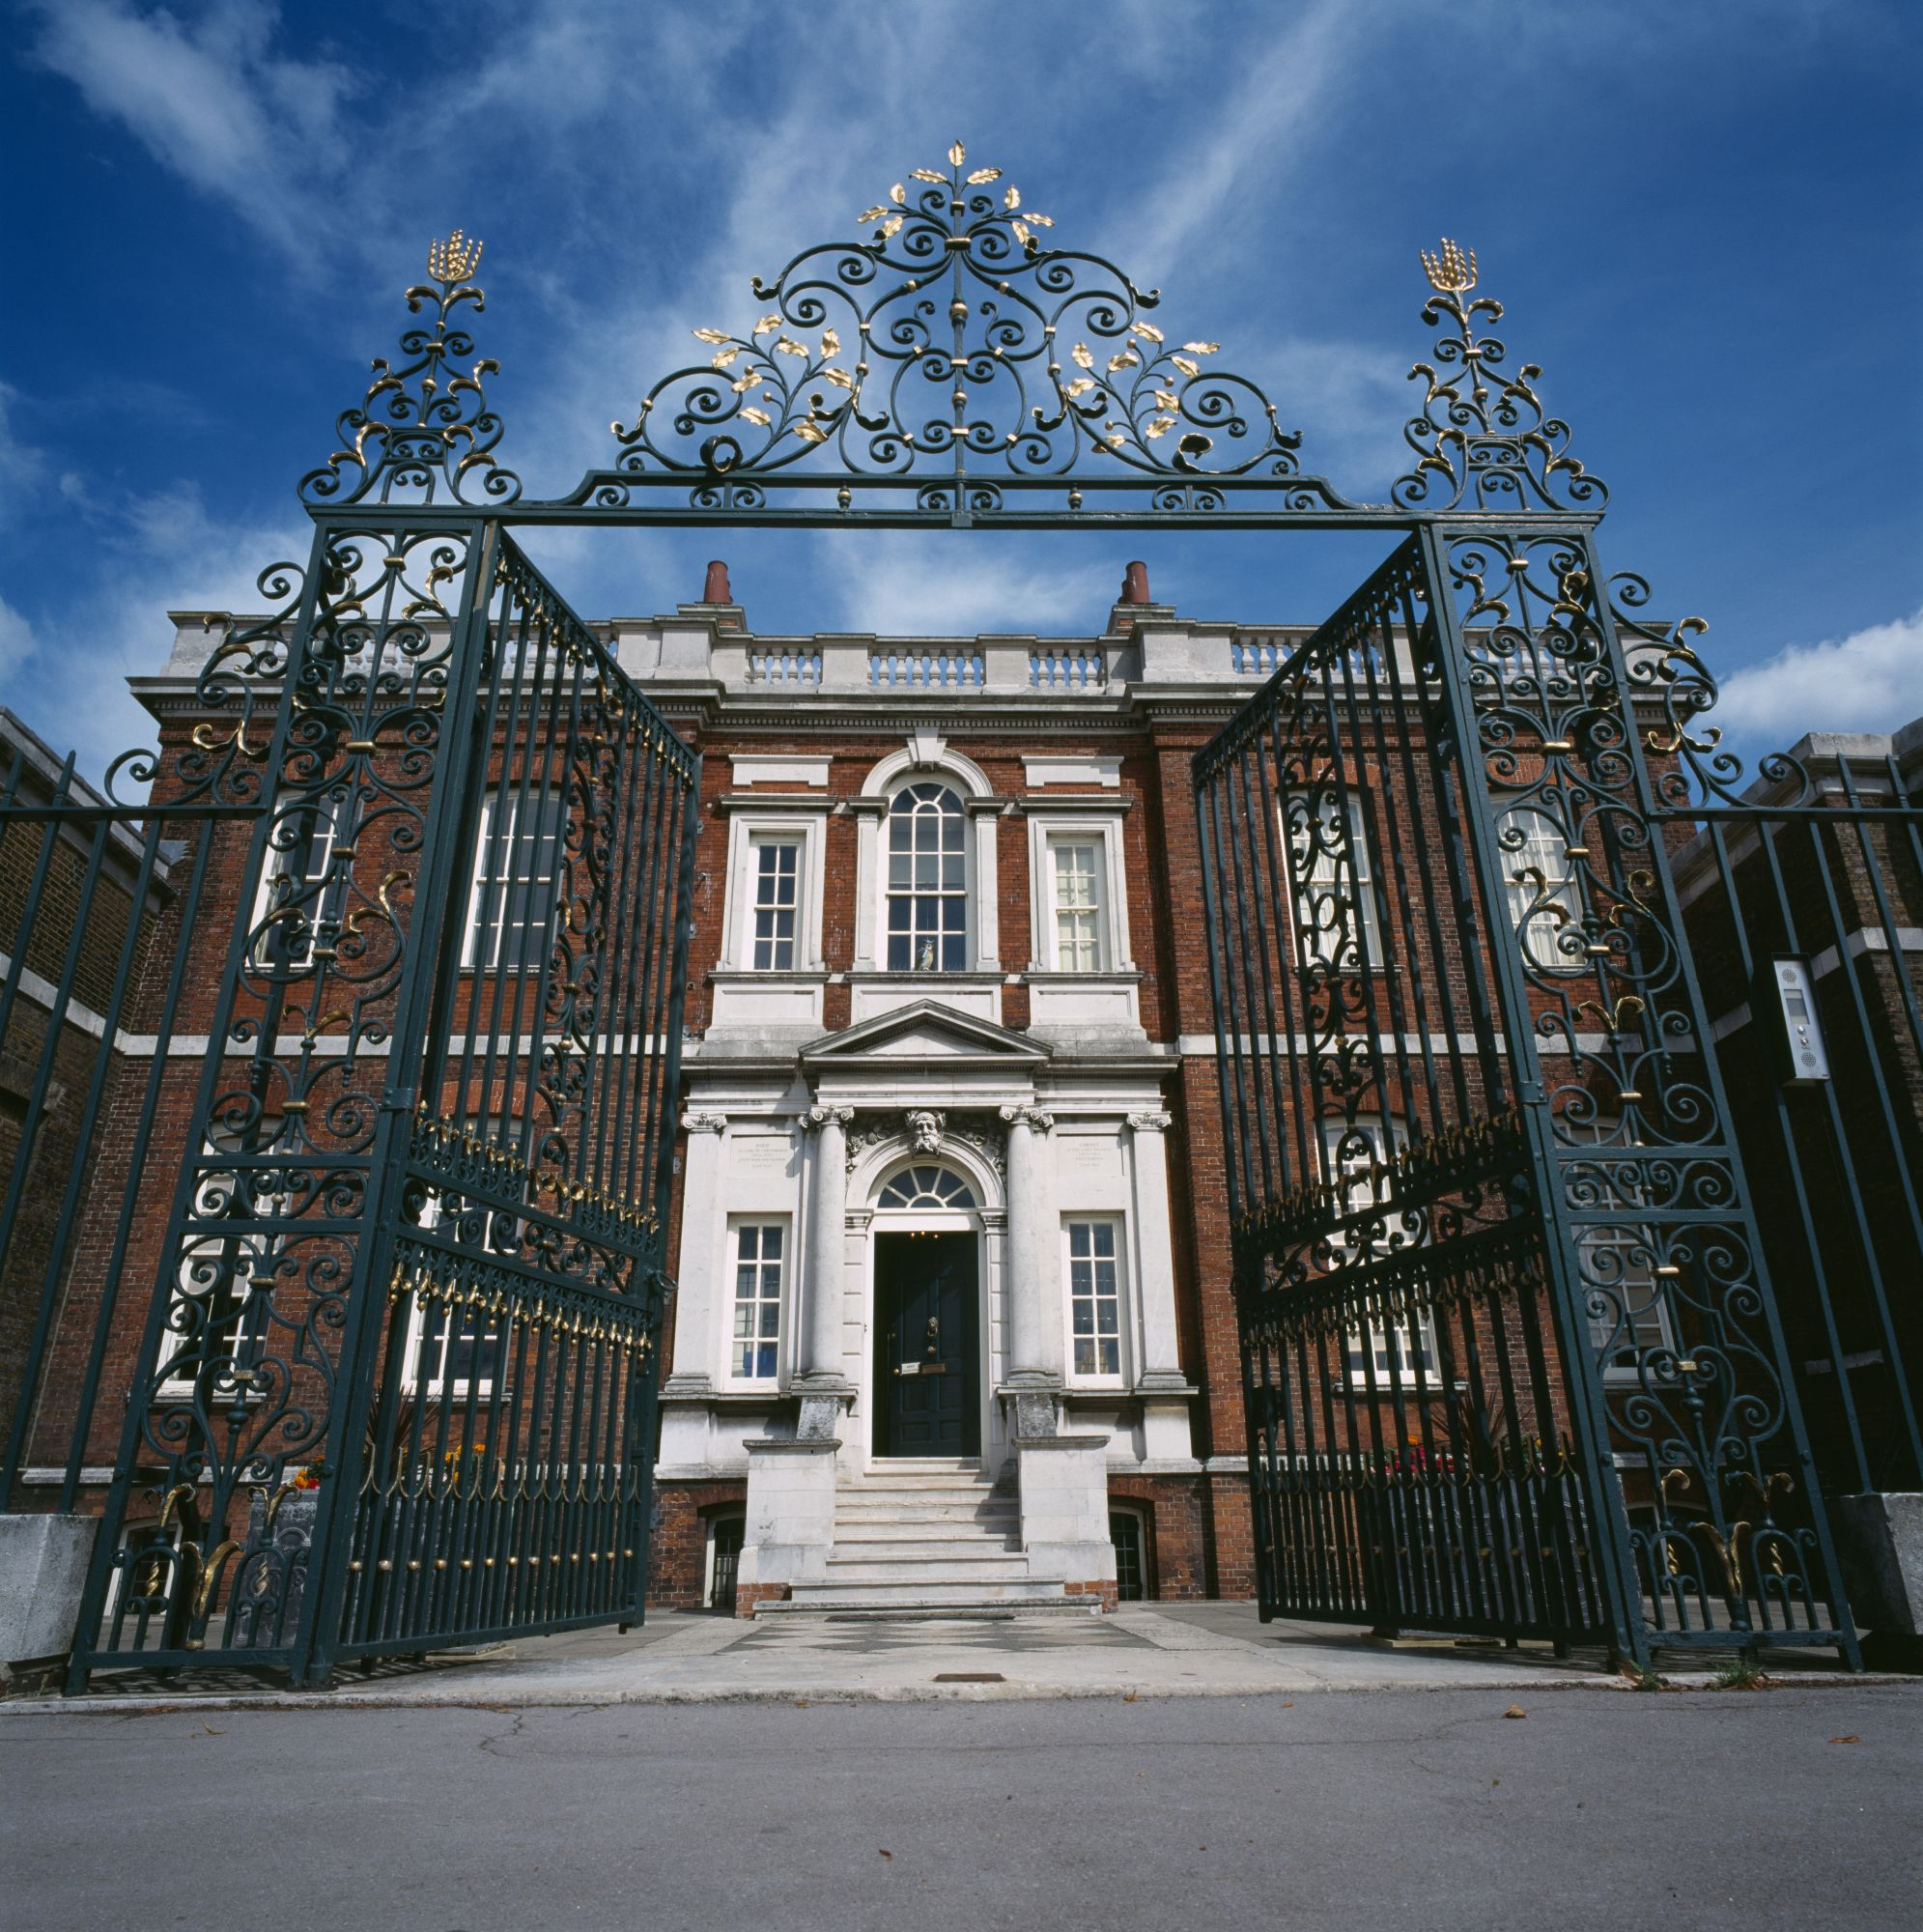 Ranger's House, Blackheath, London, c2000s(?). A view of the front of the house through the gates. Ranger's House is an elegant Georgian villa built in 1723 for the Ranger of Greenwich Park. Artist: John Wyand. (Photo English Heritage/Heritage Images/Getty Images)